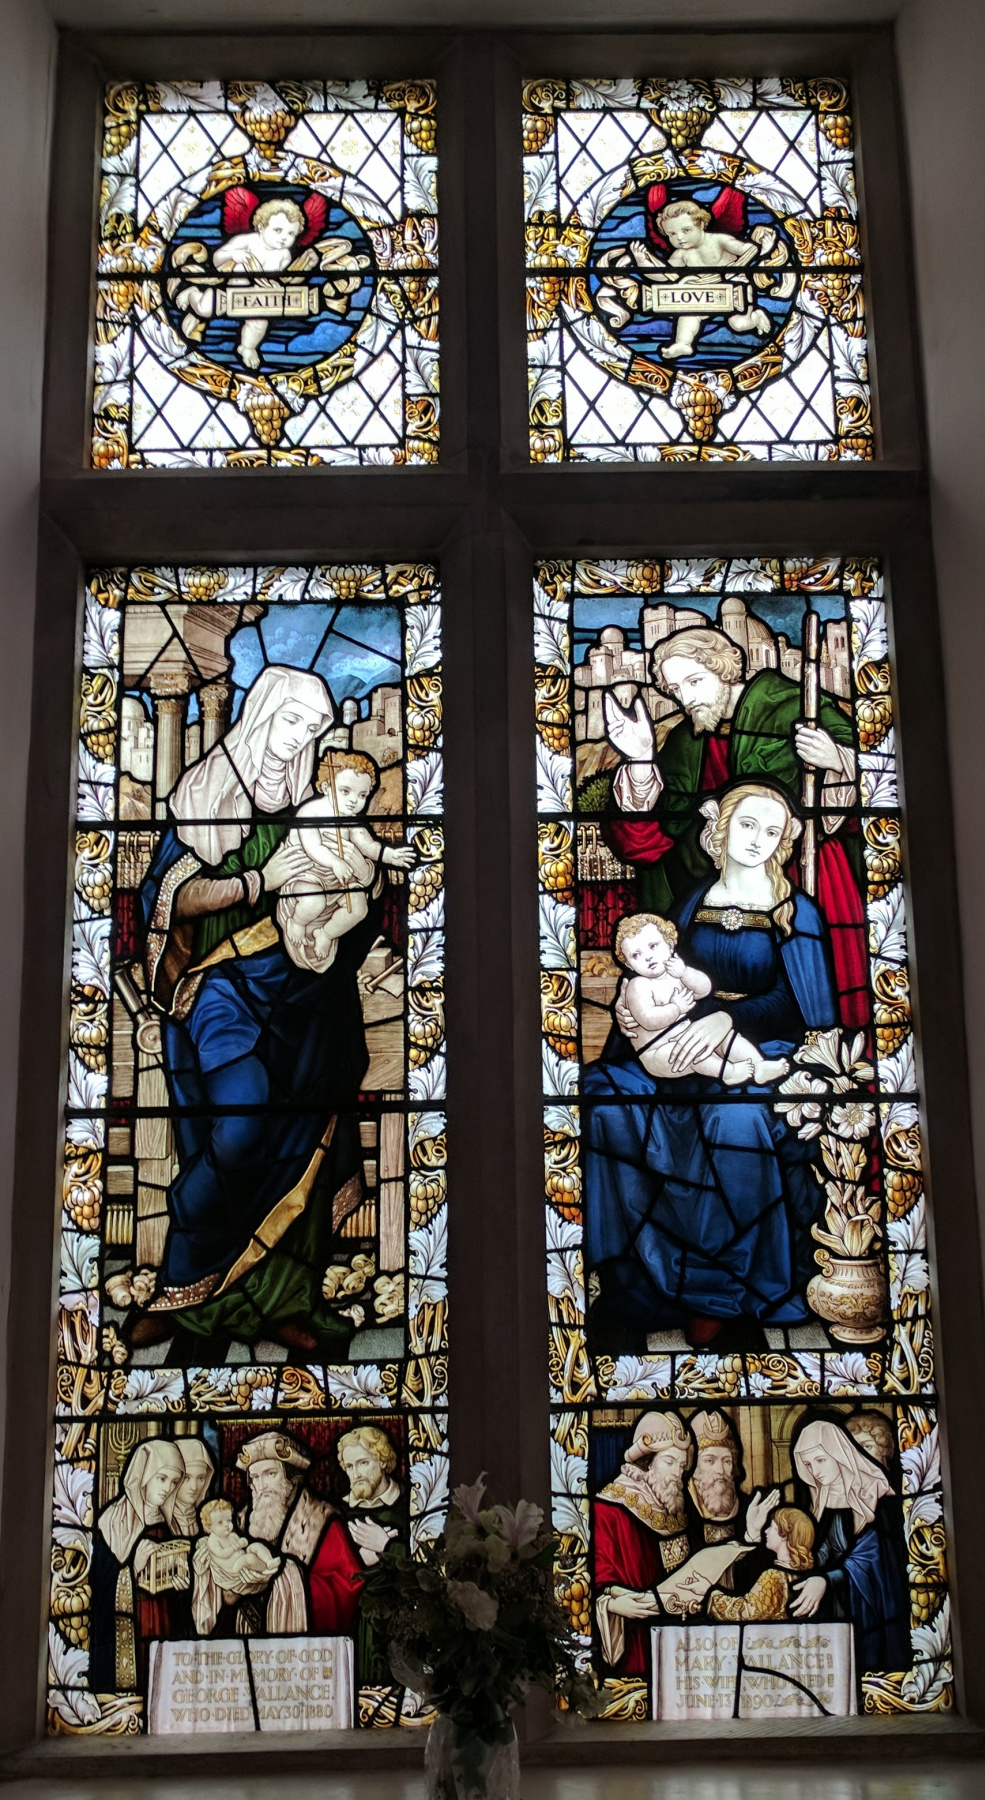 William Morris. Holy family. Stained glass window in the Old House of Assembly, Mansfield, Nottinghamshire